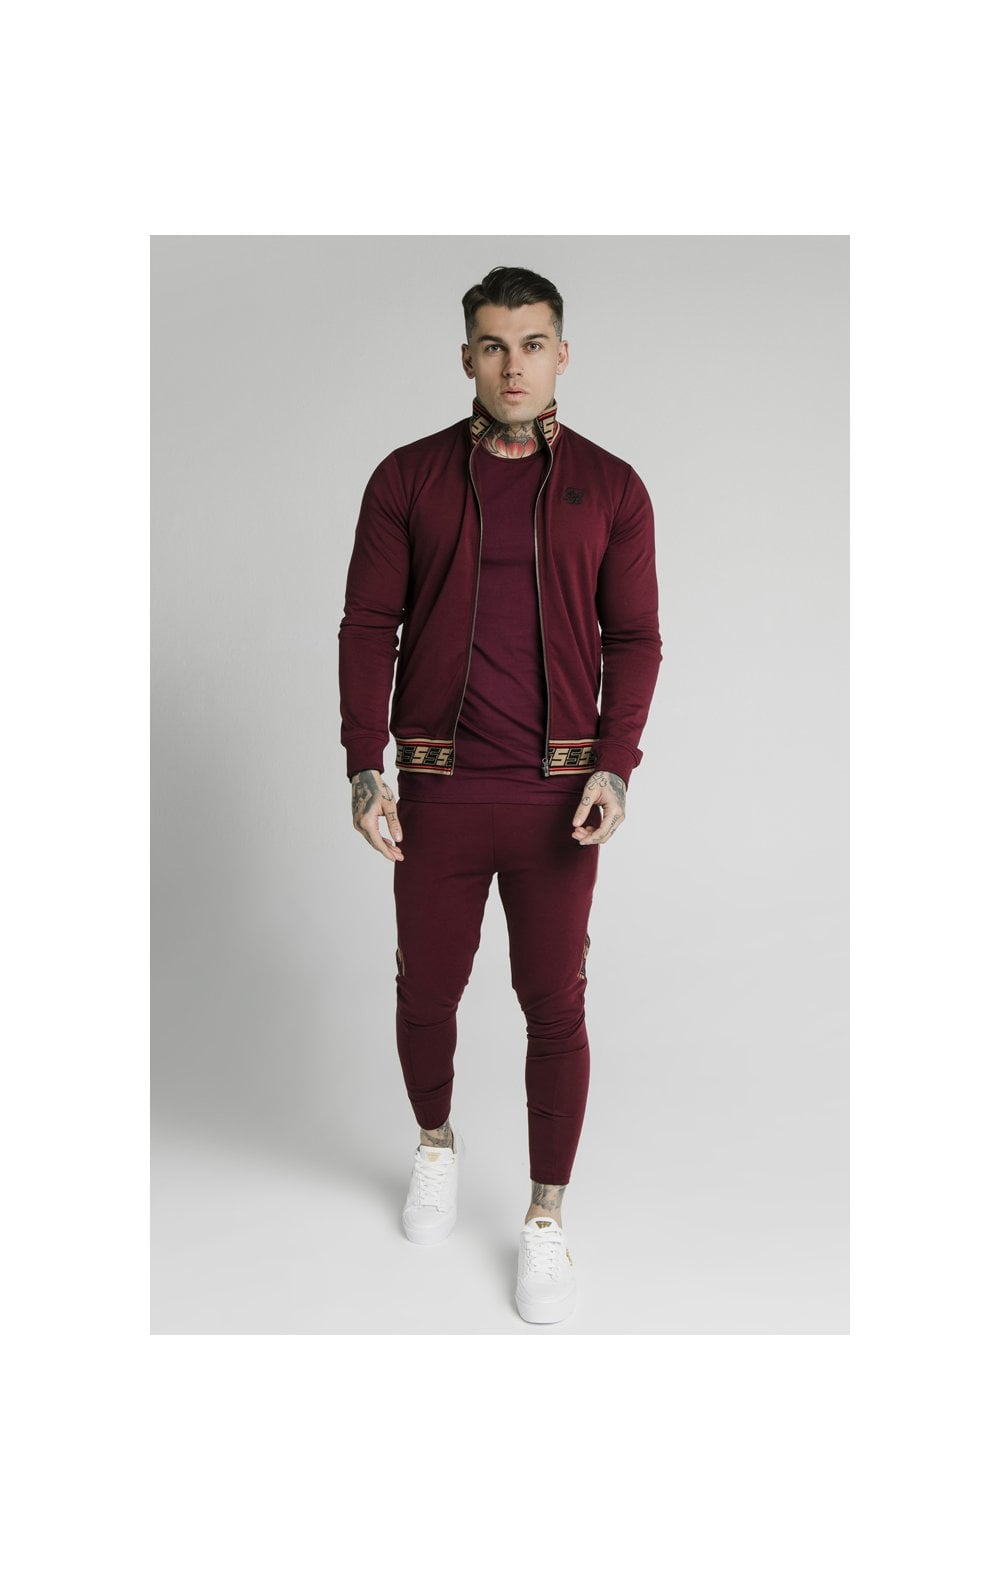 Load image into Gallery viewer, SikSilk Jacquard Retro Zip Through - Burgundy (3)